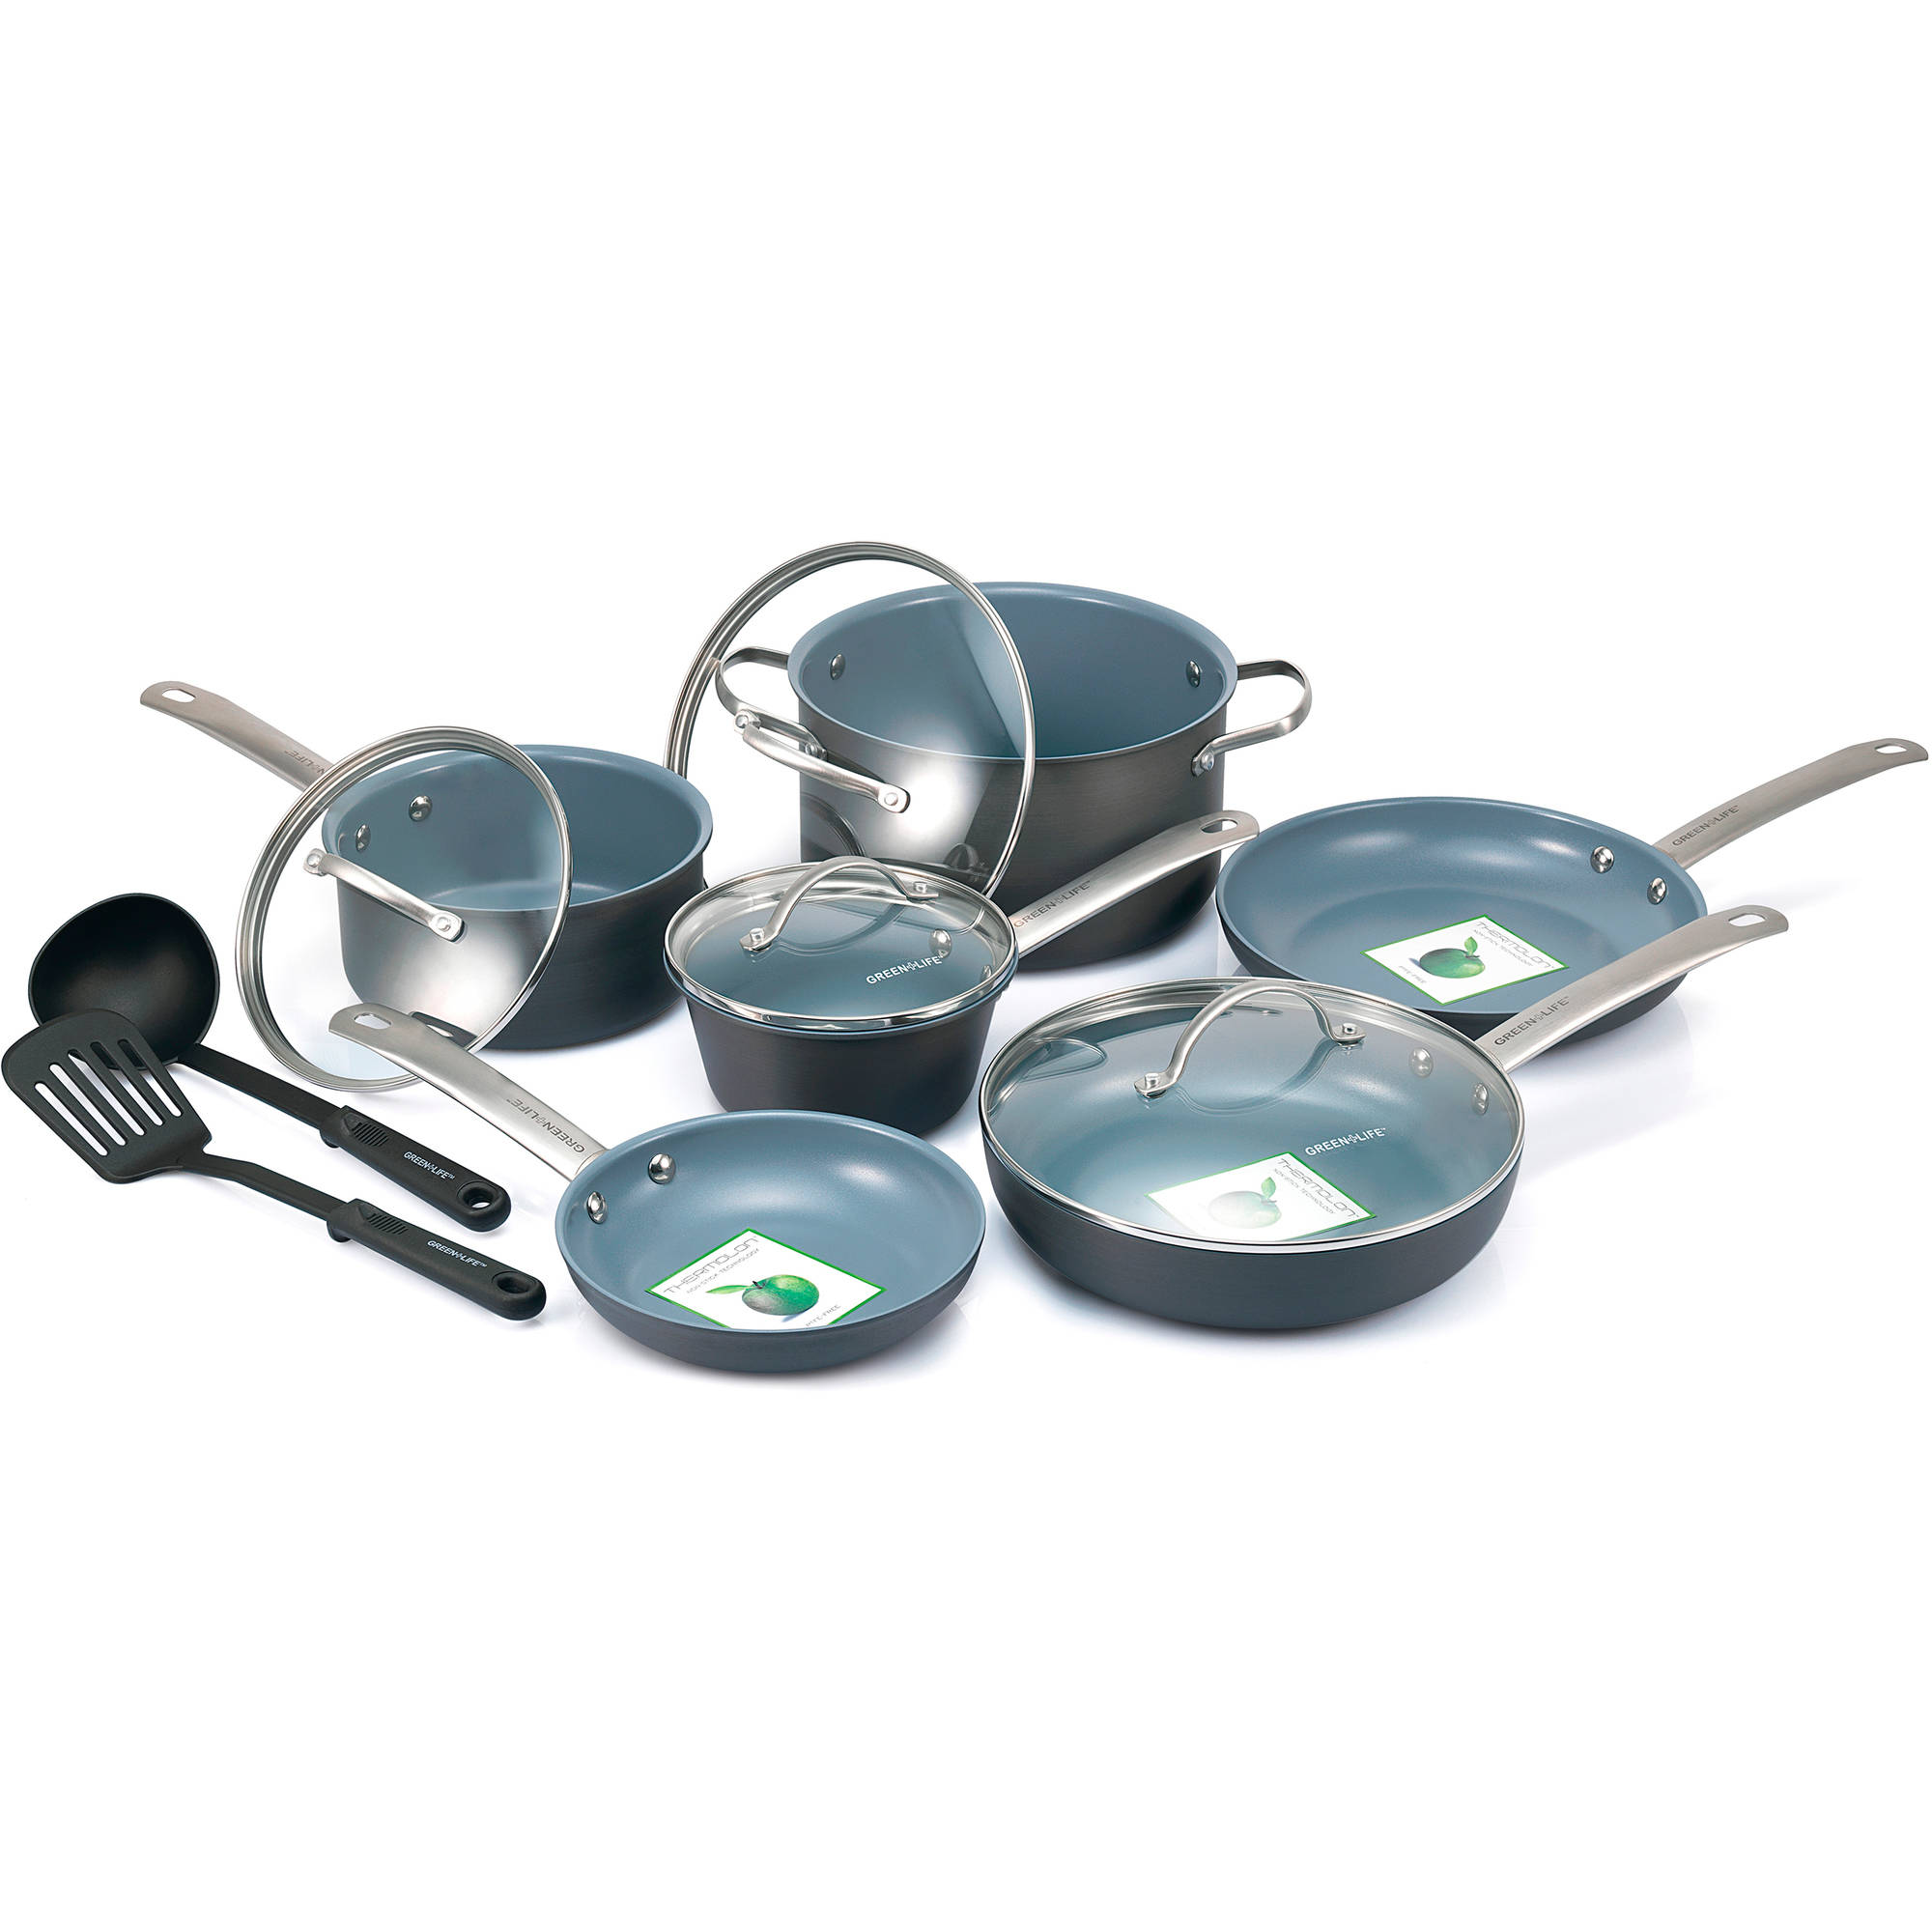 GreenLife Healthy Ceramic Non-Stick 12-Piece Gourmet Hard-Anodized Cookware Set